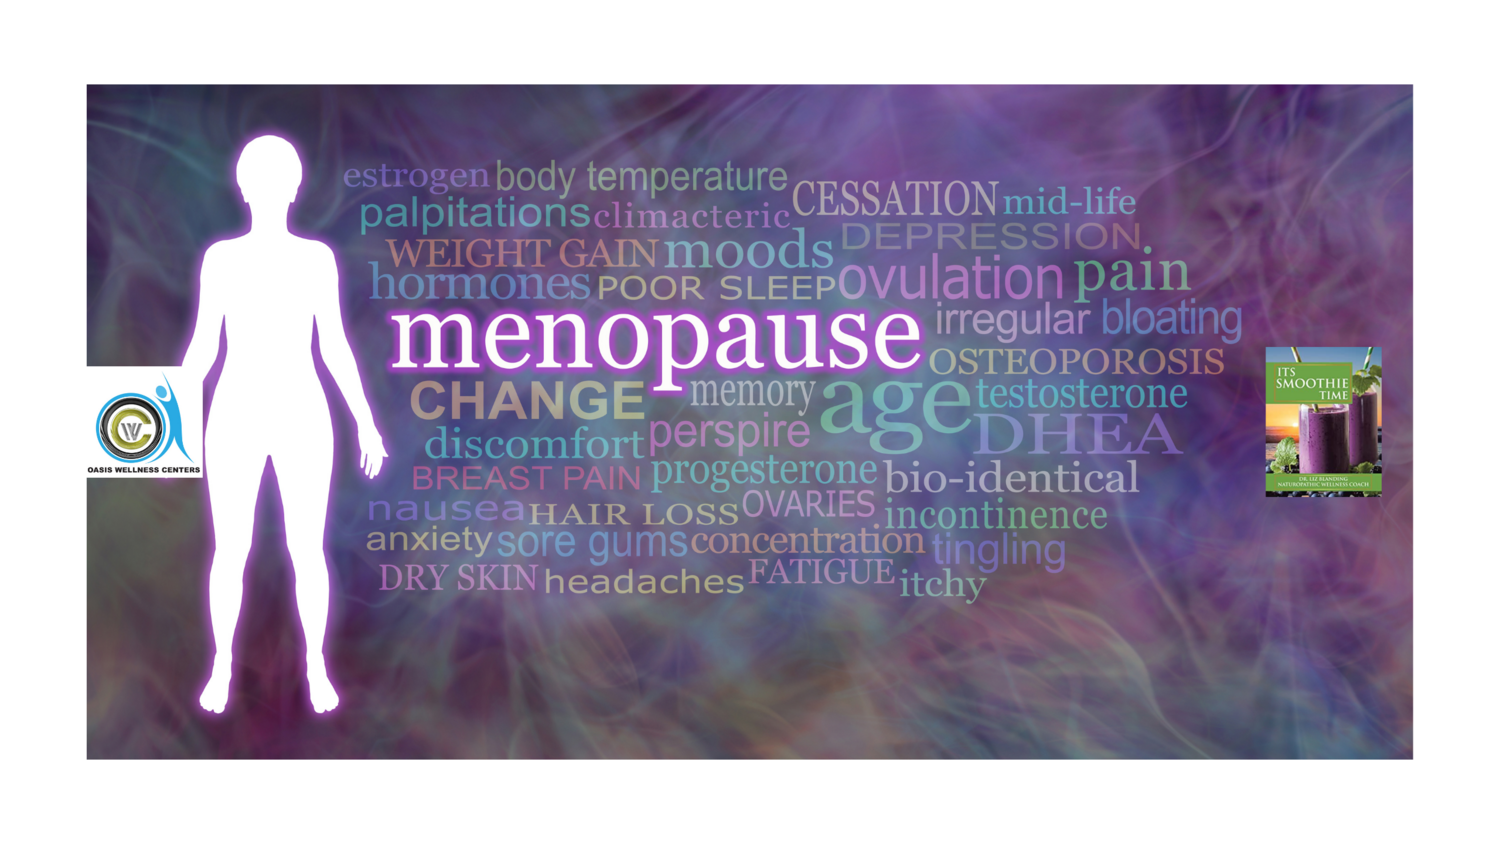 Control Menopausal Insomnia with Herbs Coaching - Consultation (Bonus ** ITS SMOOTHIE TIME **Autographed Book Included)